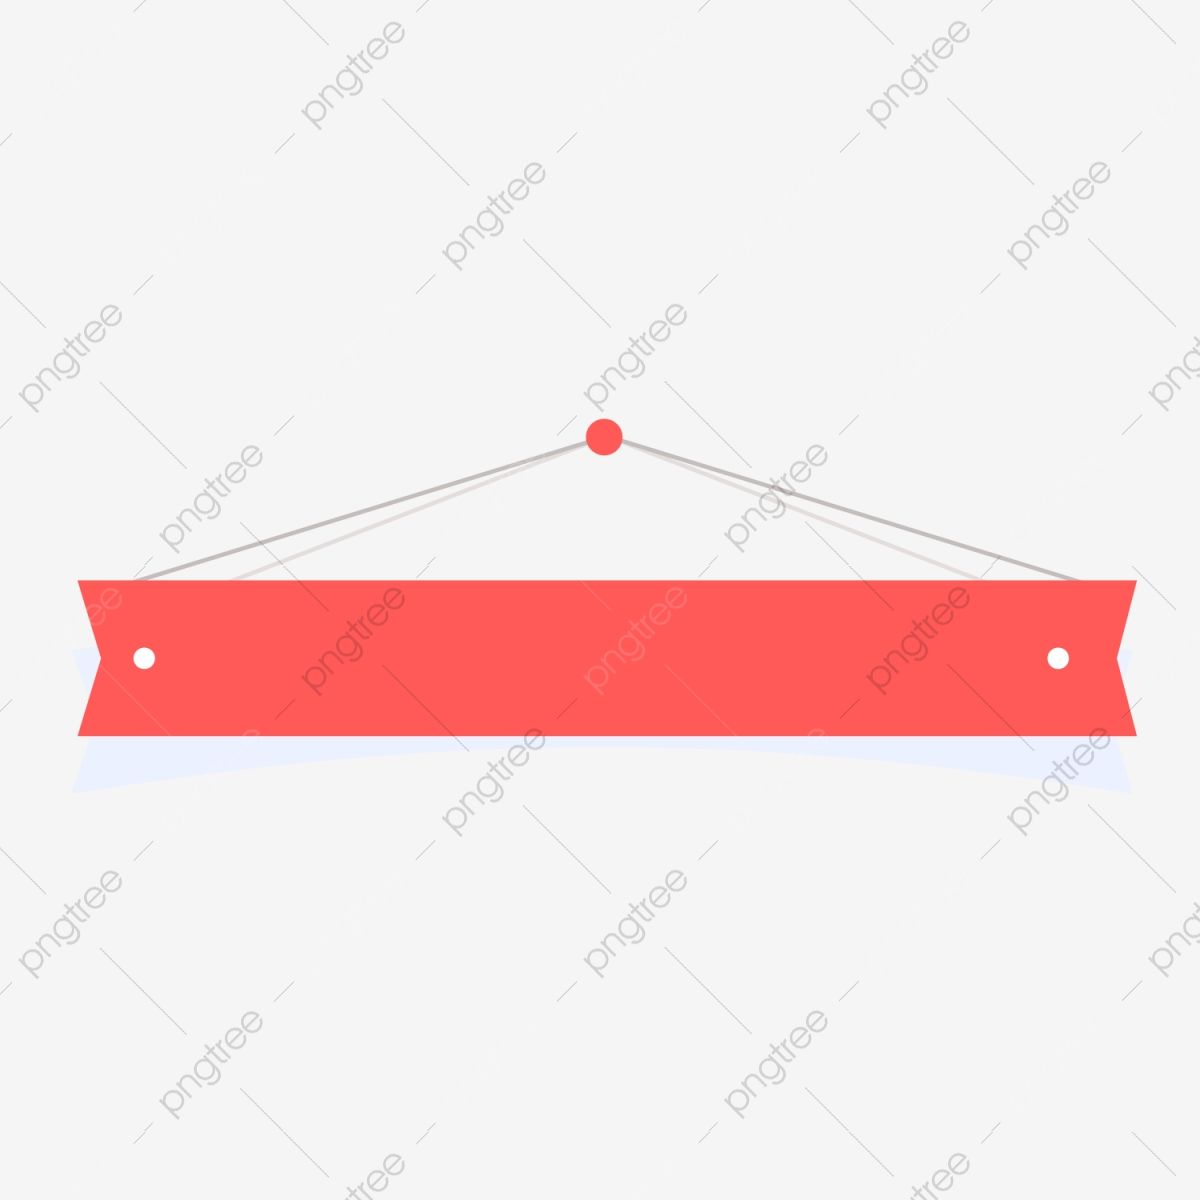 Red Banner Material Banner Banners Red Banners Png And Vector With Transparent Background For Free Download Banner Standee Design Background Banner